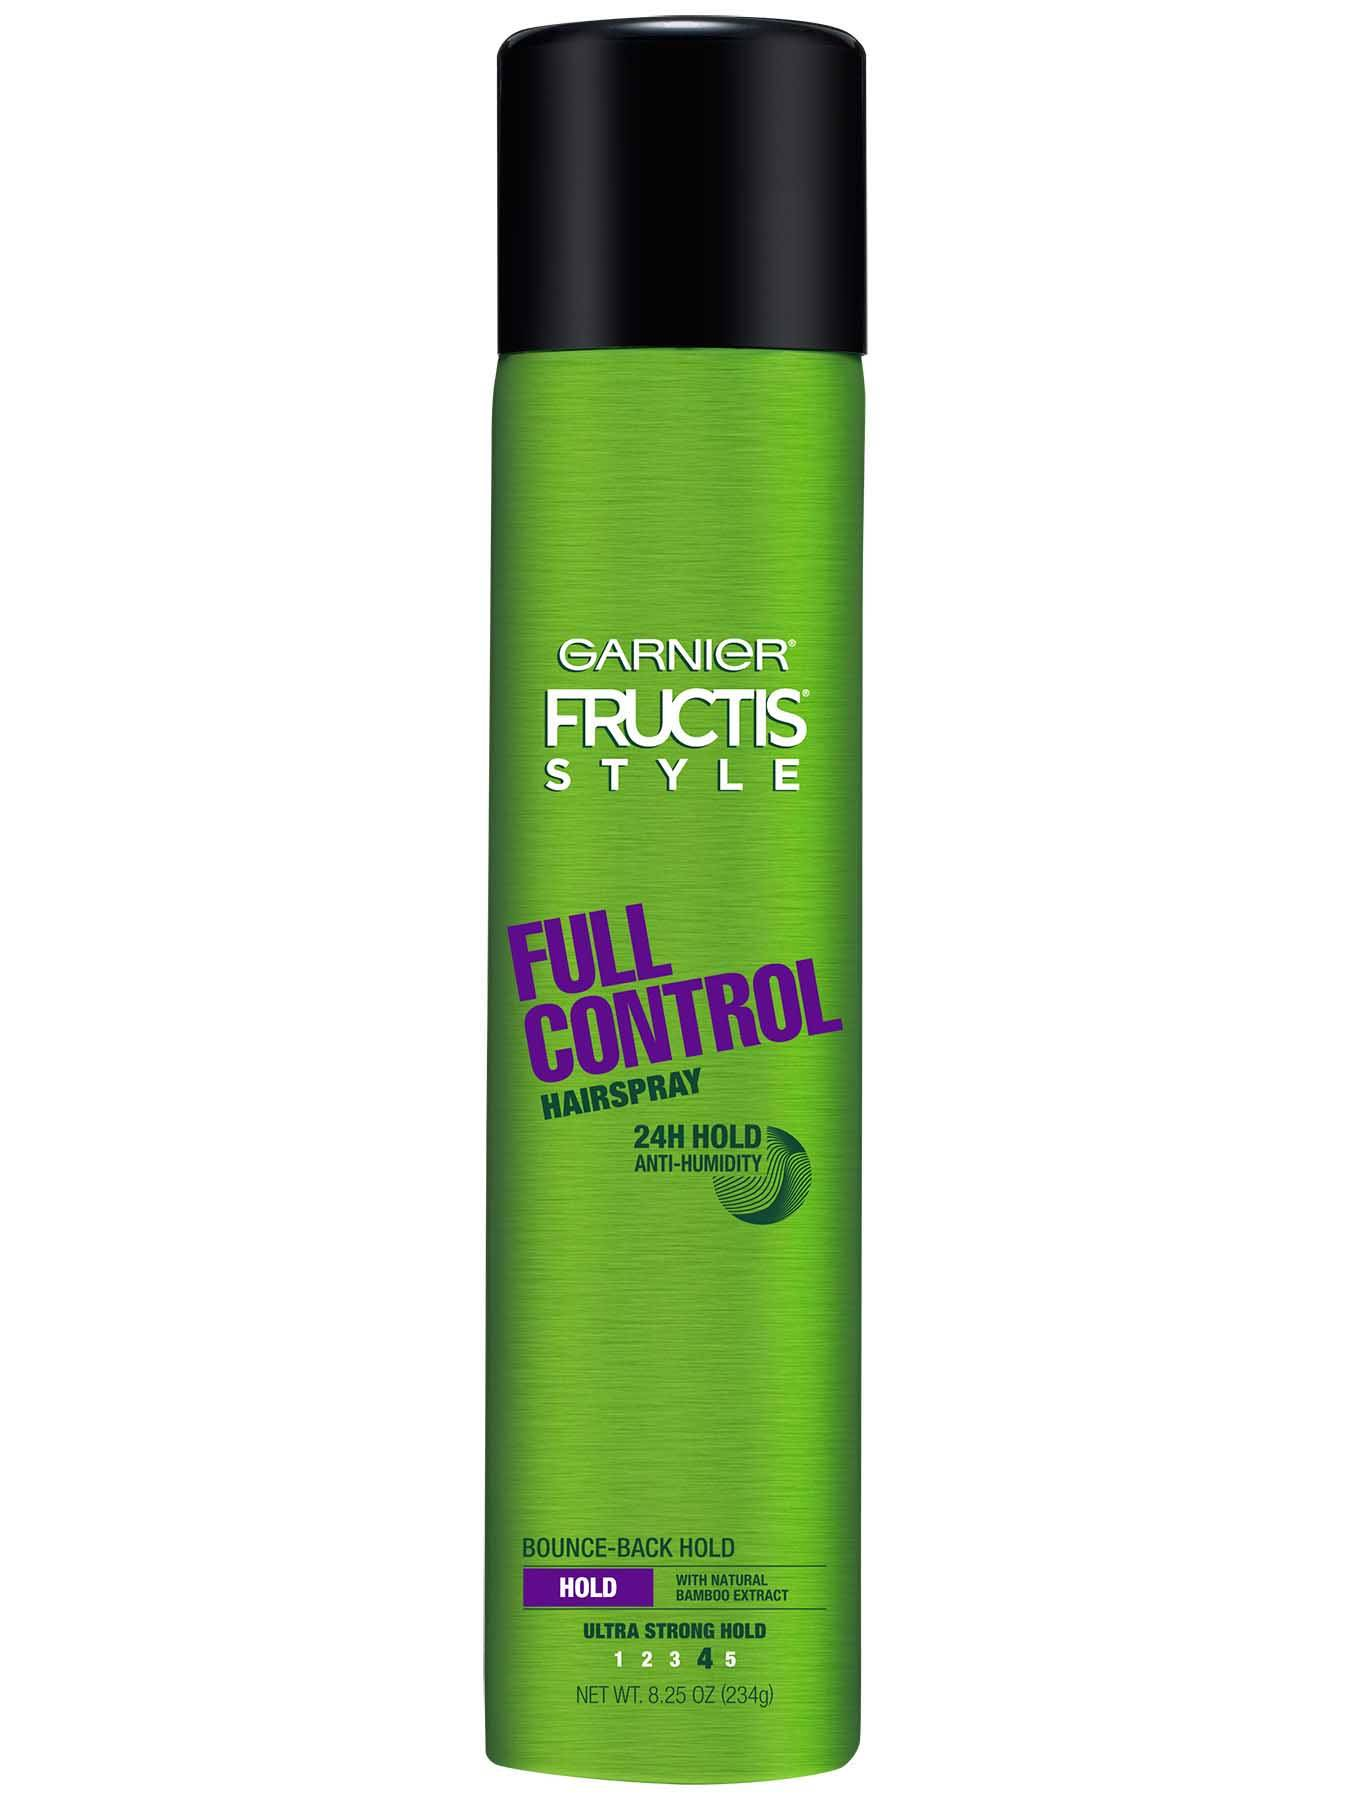 Front view of Full Control Anti-Humidity Aerosol Hairspray.